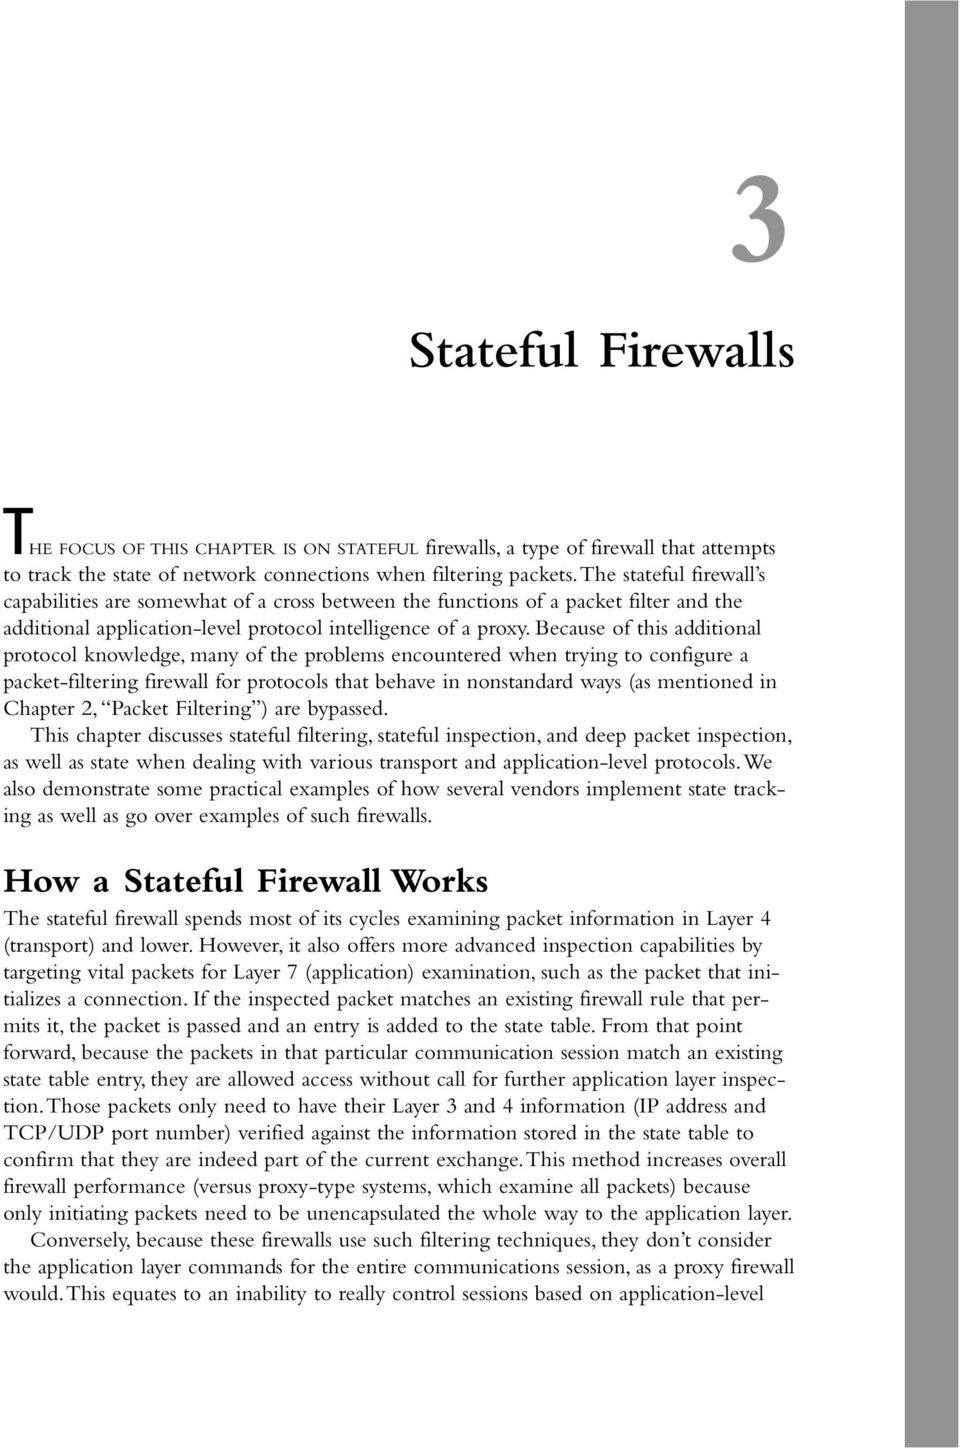 Because of this additional protocol knowledge, many of the problems encountered when trying to configure a packet-filtering firewall for protocols that behave in nonstandard ways (as mentioned in